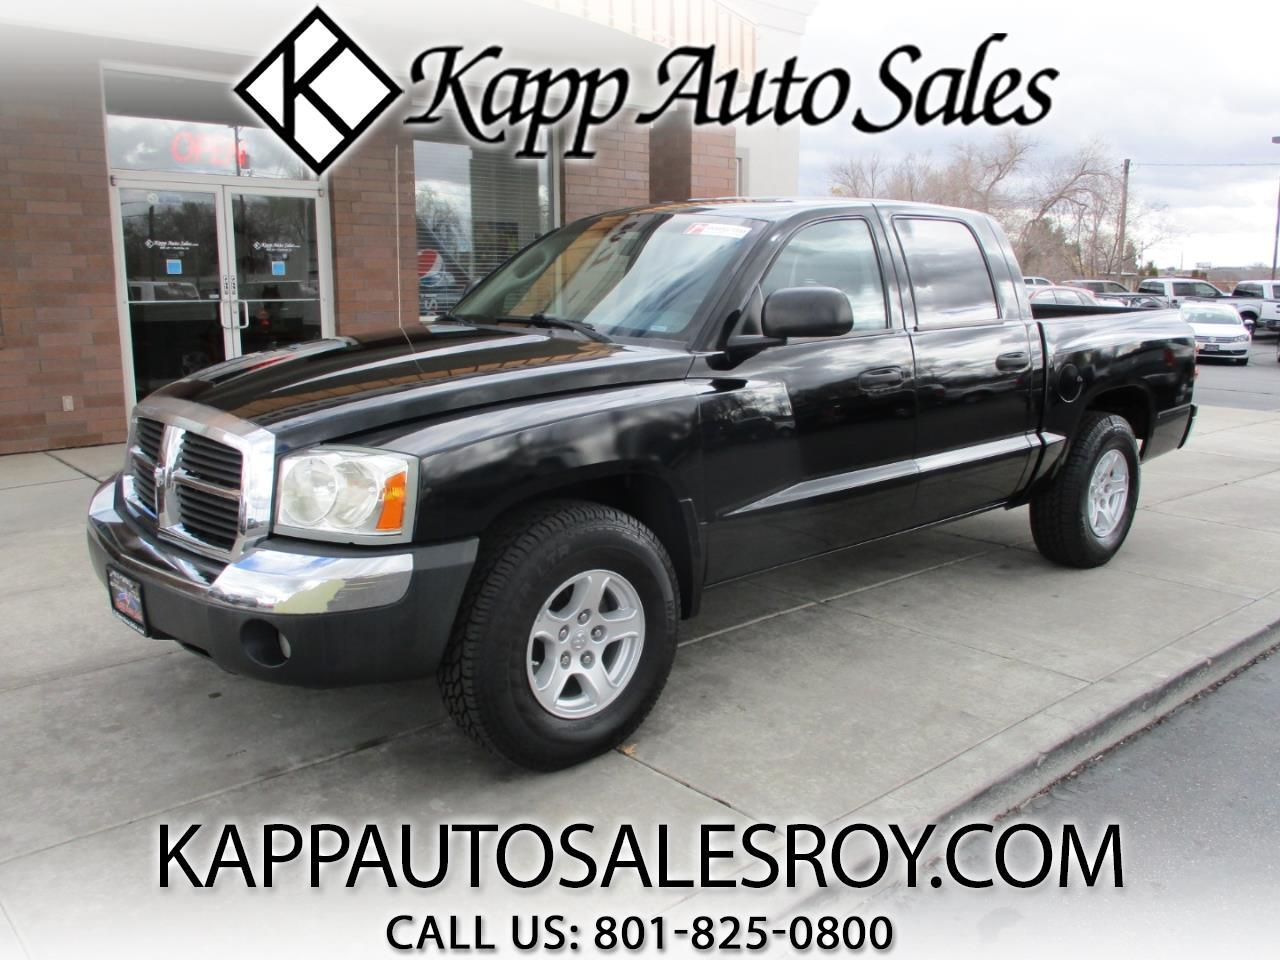 2005 Dodge Dakota SLT Crew Cab 4WD